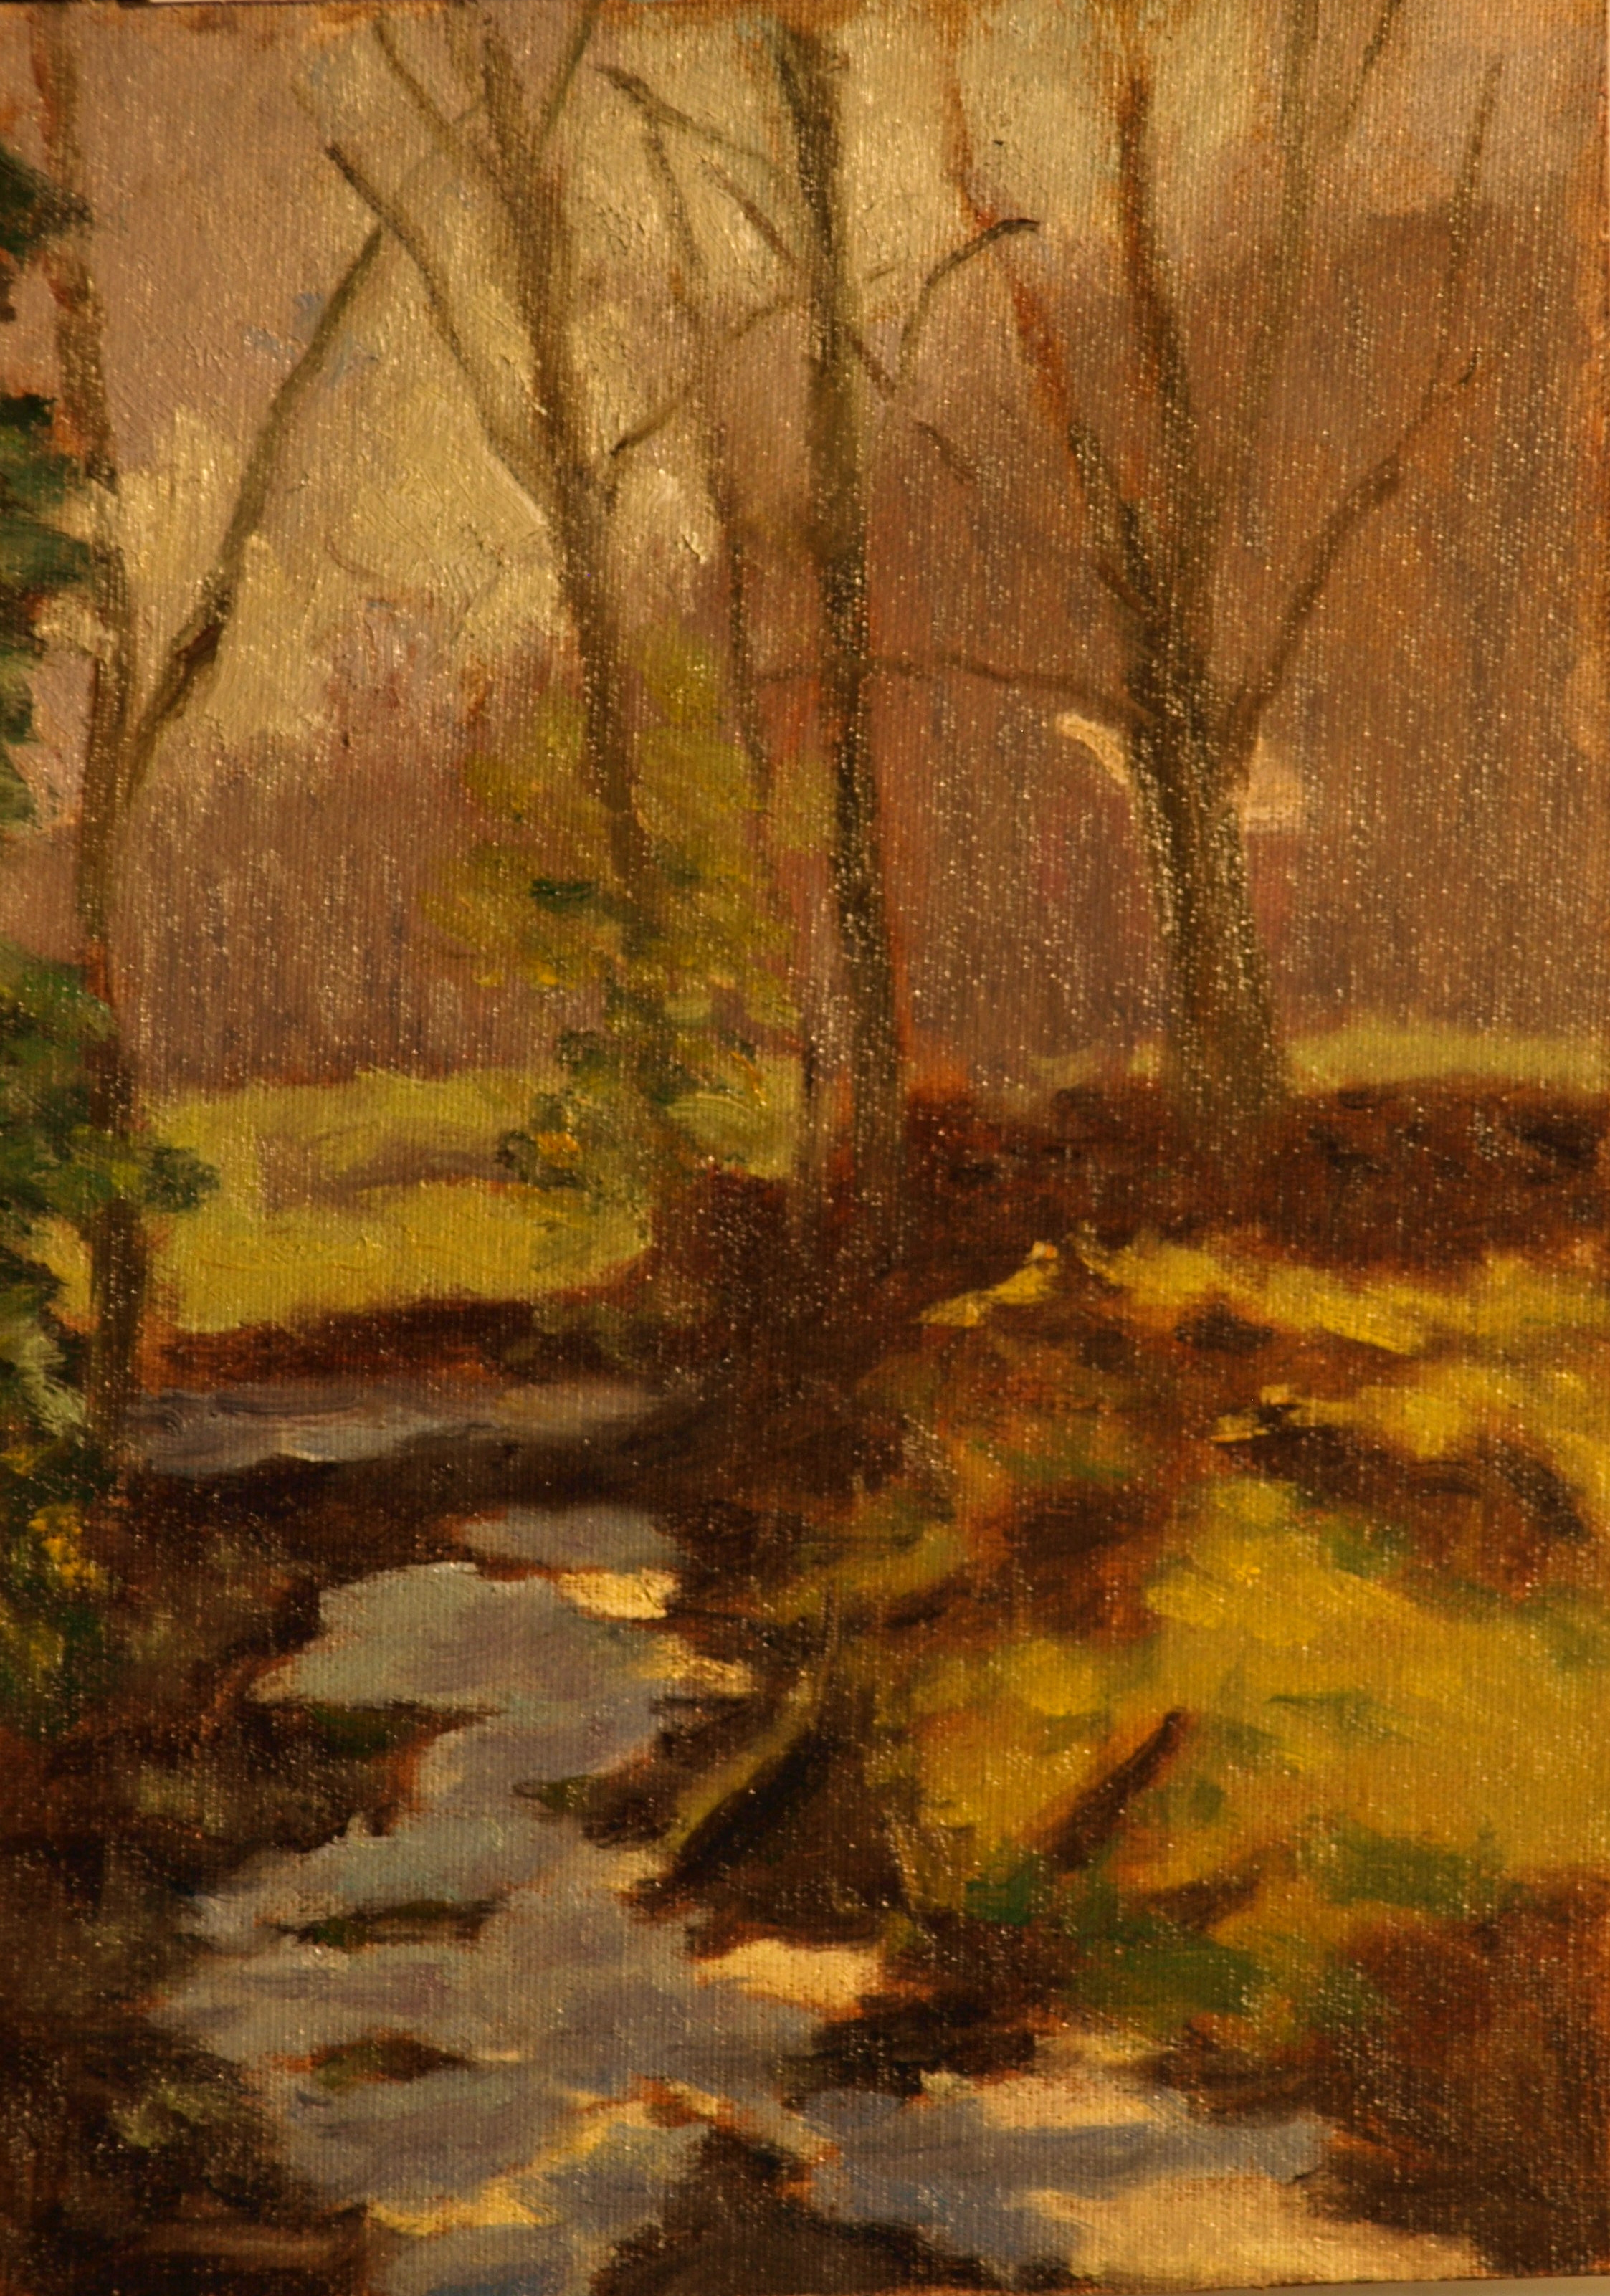 Brook in Hazy Sunlight, Oil on Canvas on Panel, 9 x 12 Inches, by Richard Stalter, $225